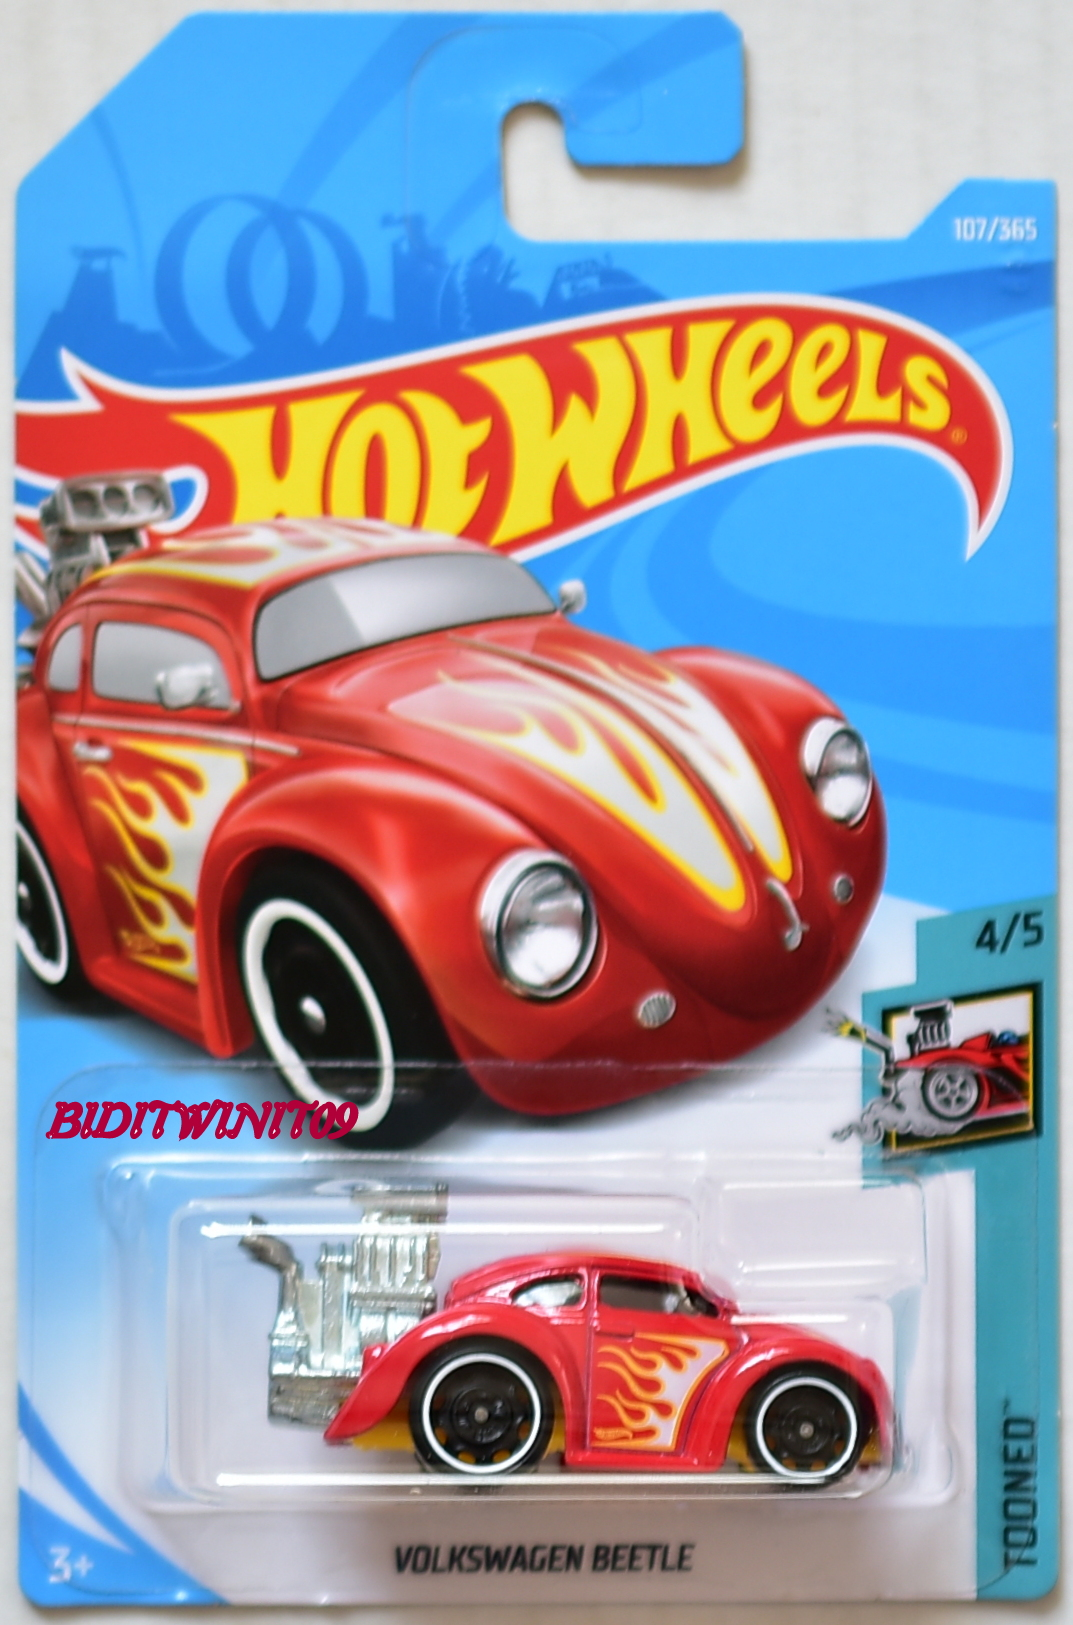 HOT WHEELS 2018 TOONED VOLKSWAGEN BEETLE #4/5 RED